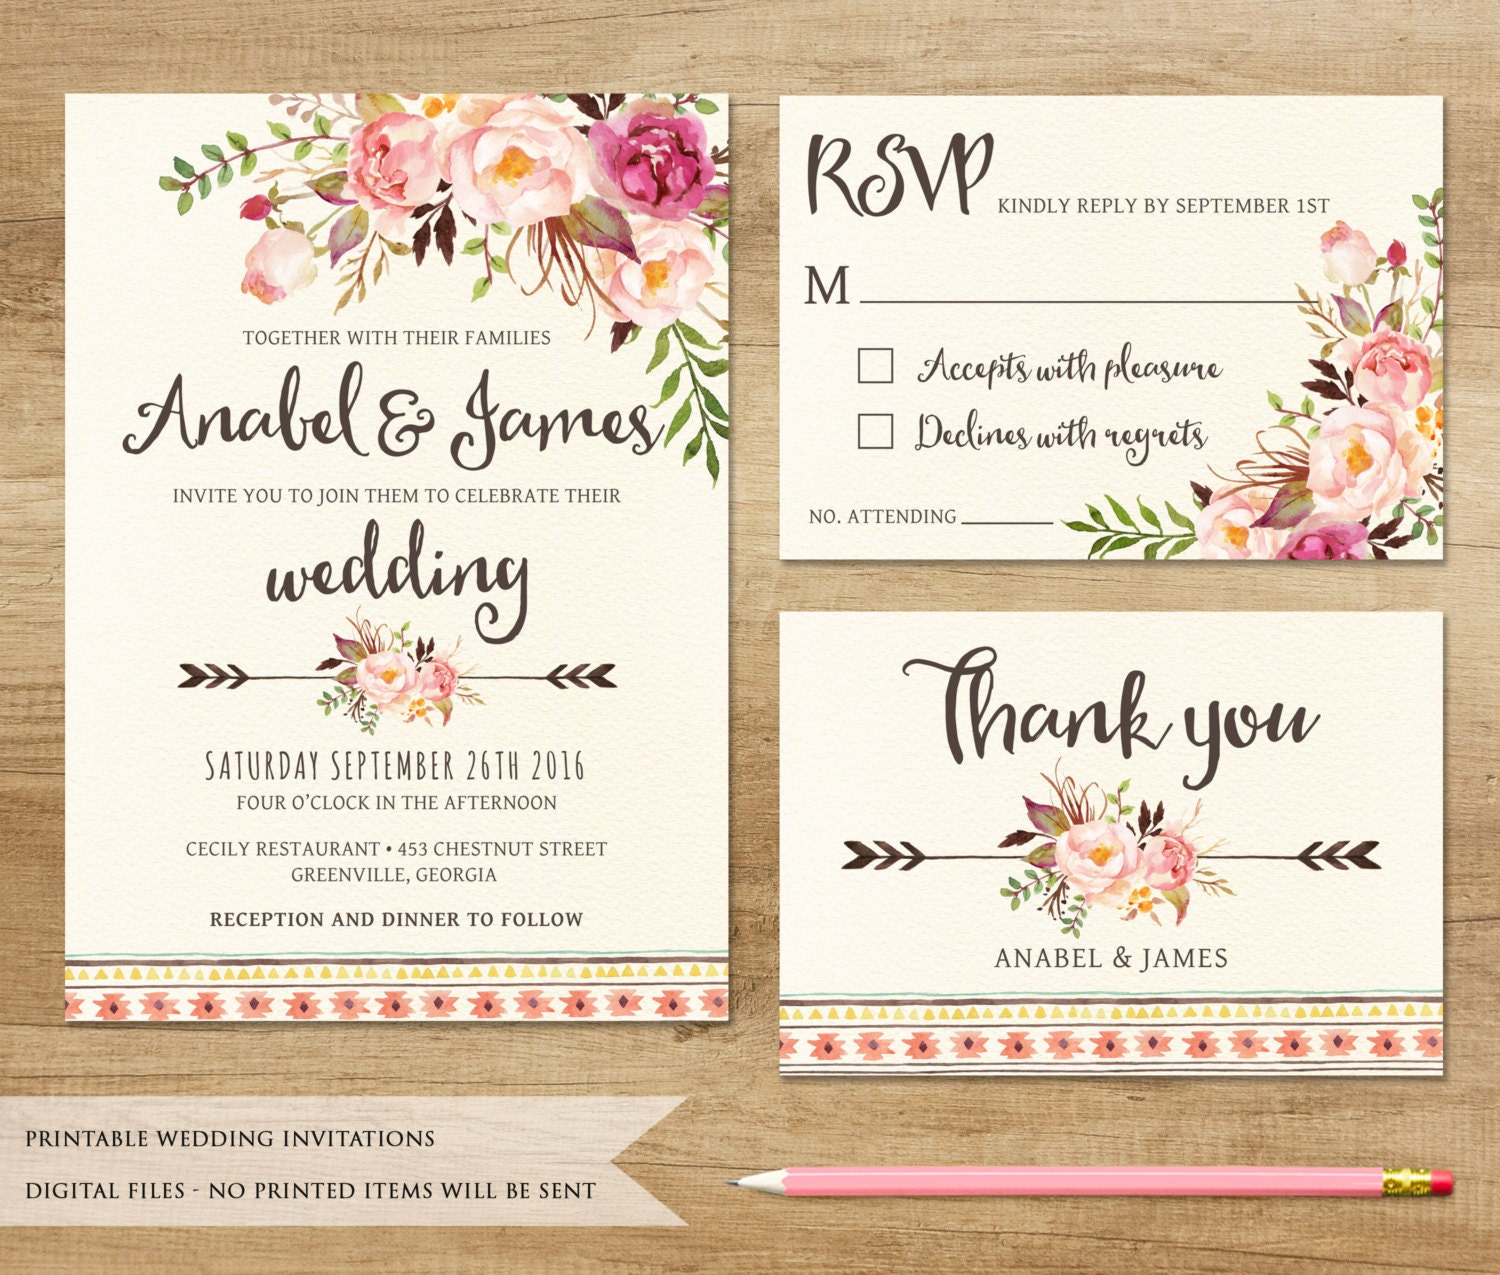 Floral Wedding Invitation. Printable Wedding Invitation.